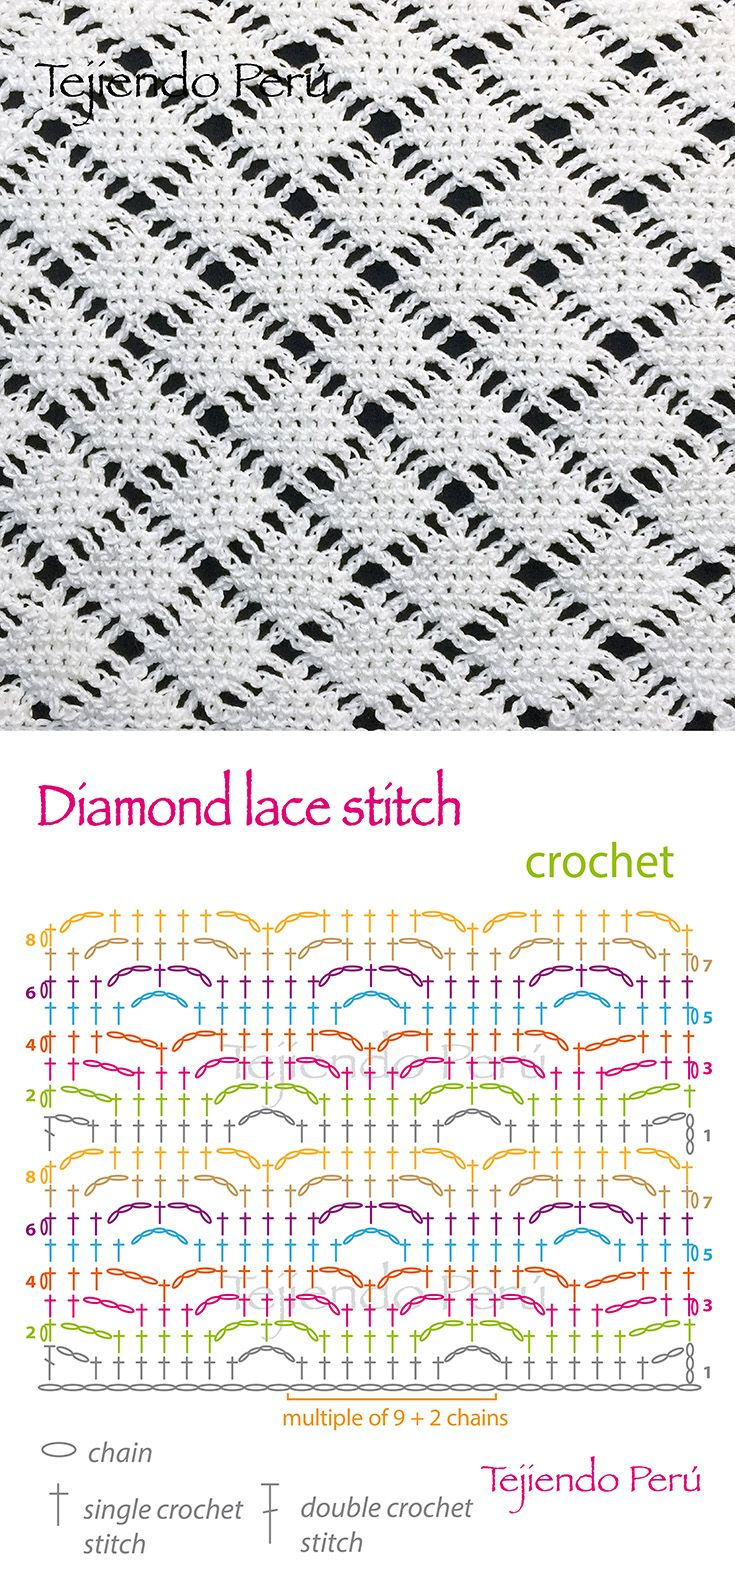 Crochet: diamond lace stitch diagram! | Crochet 2 | Pinterest ...